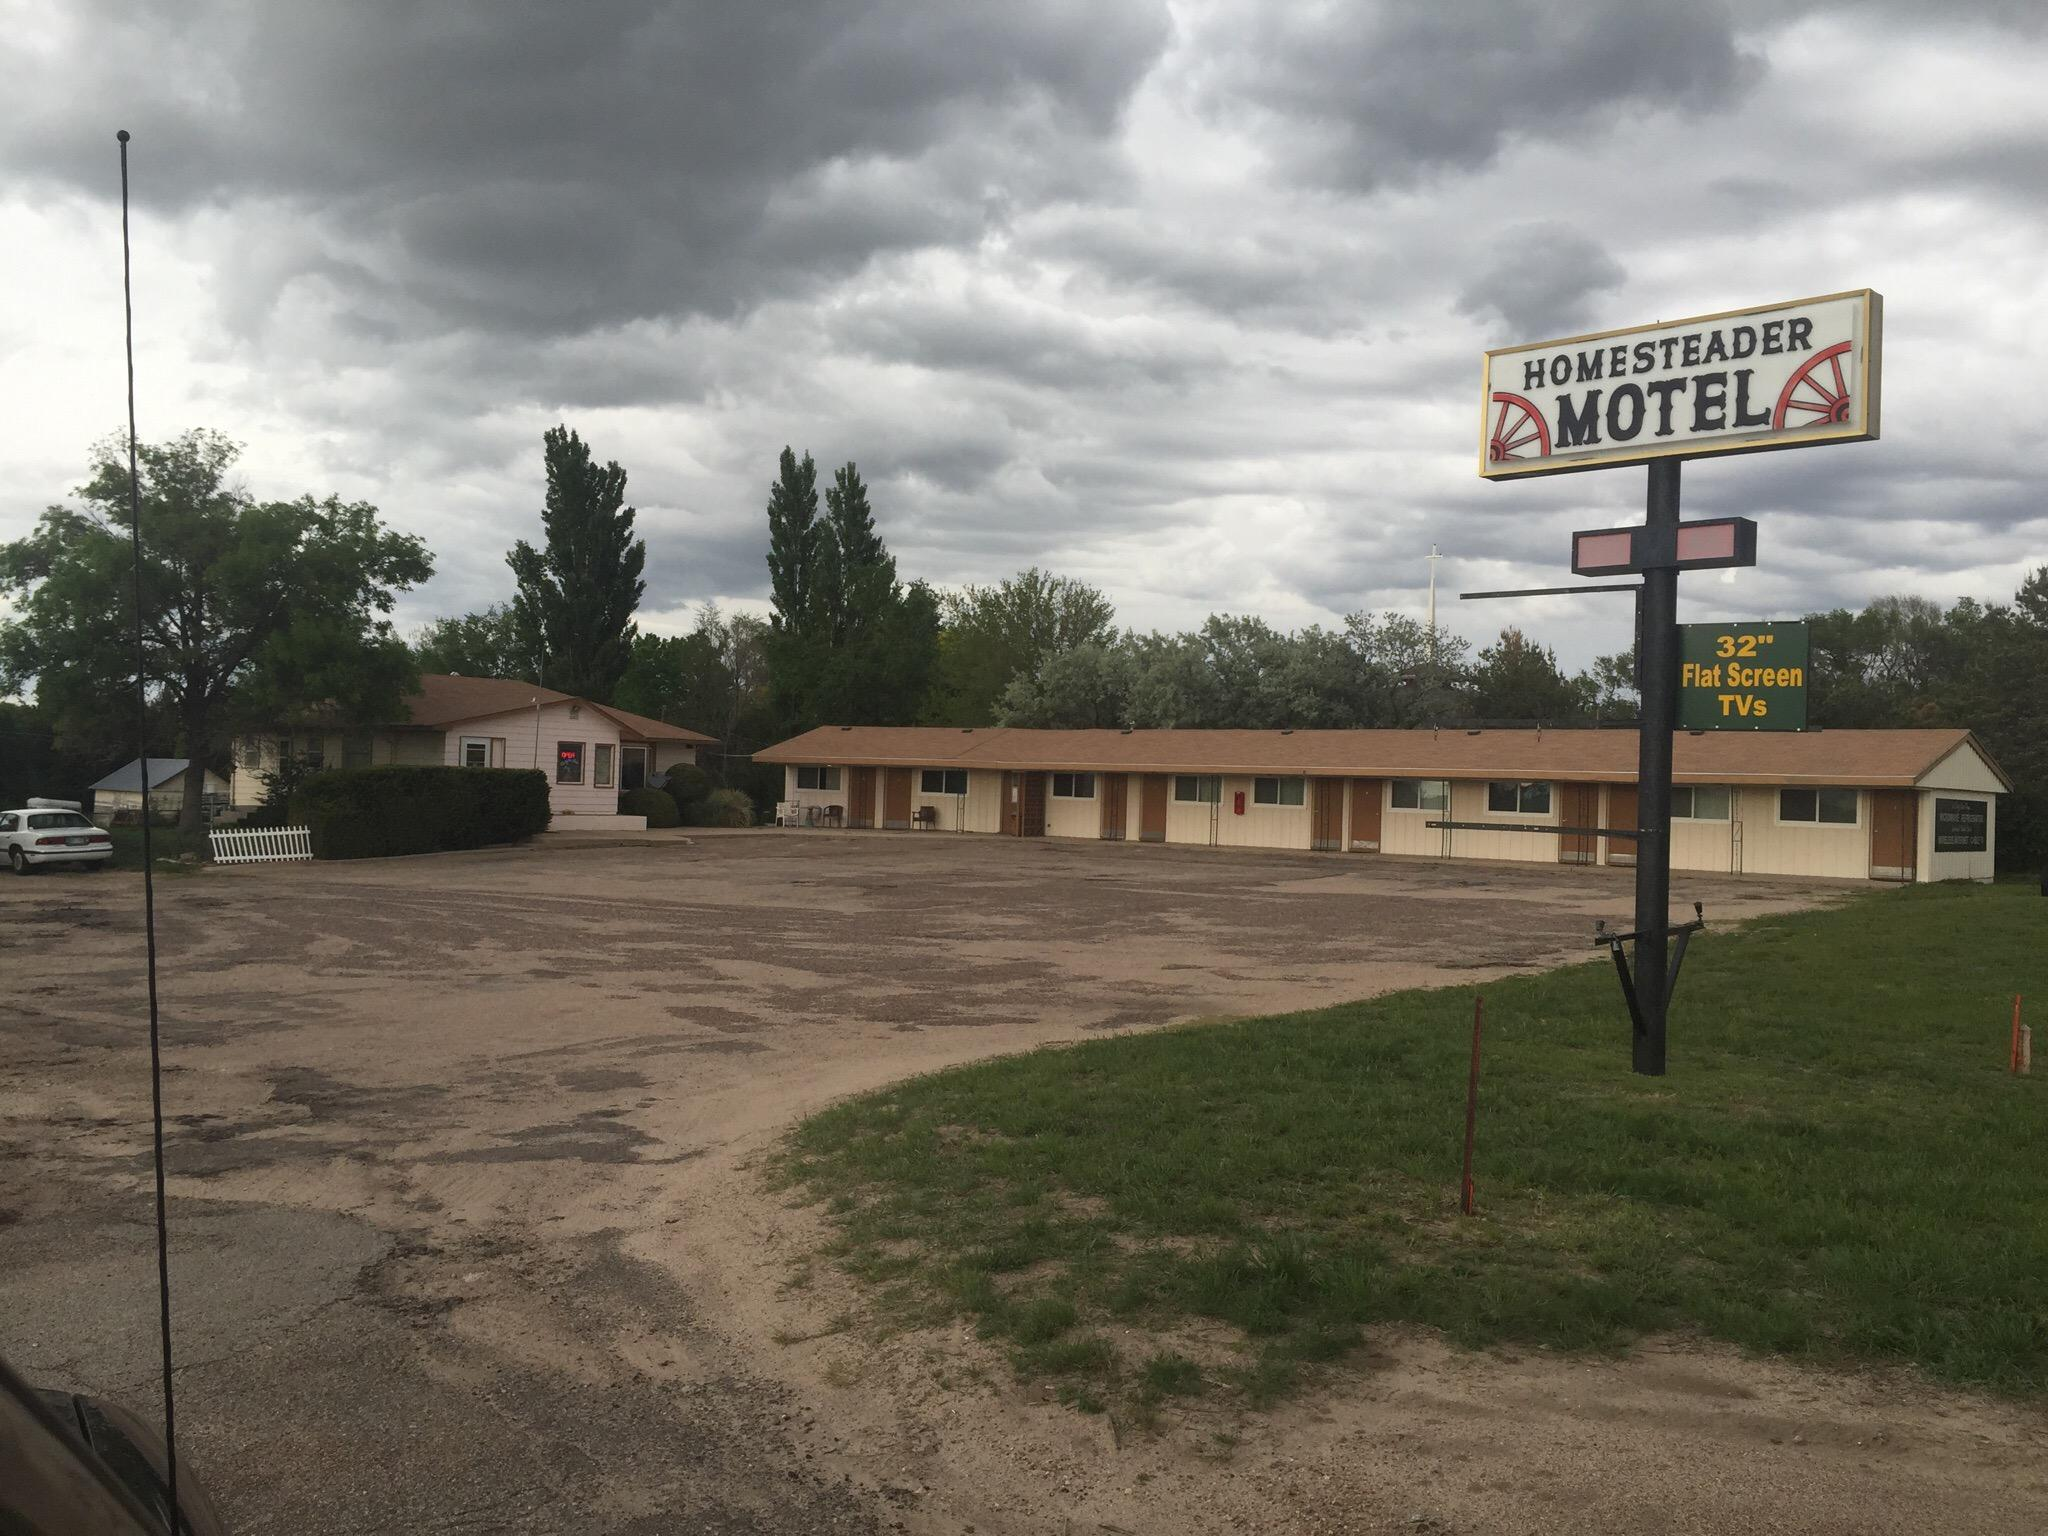 Homesteader Motel